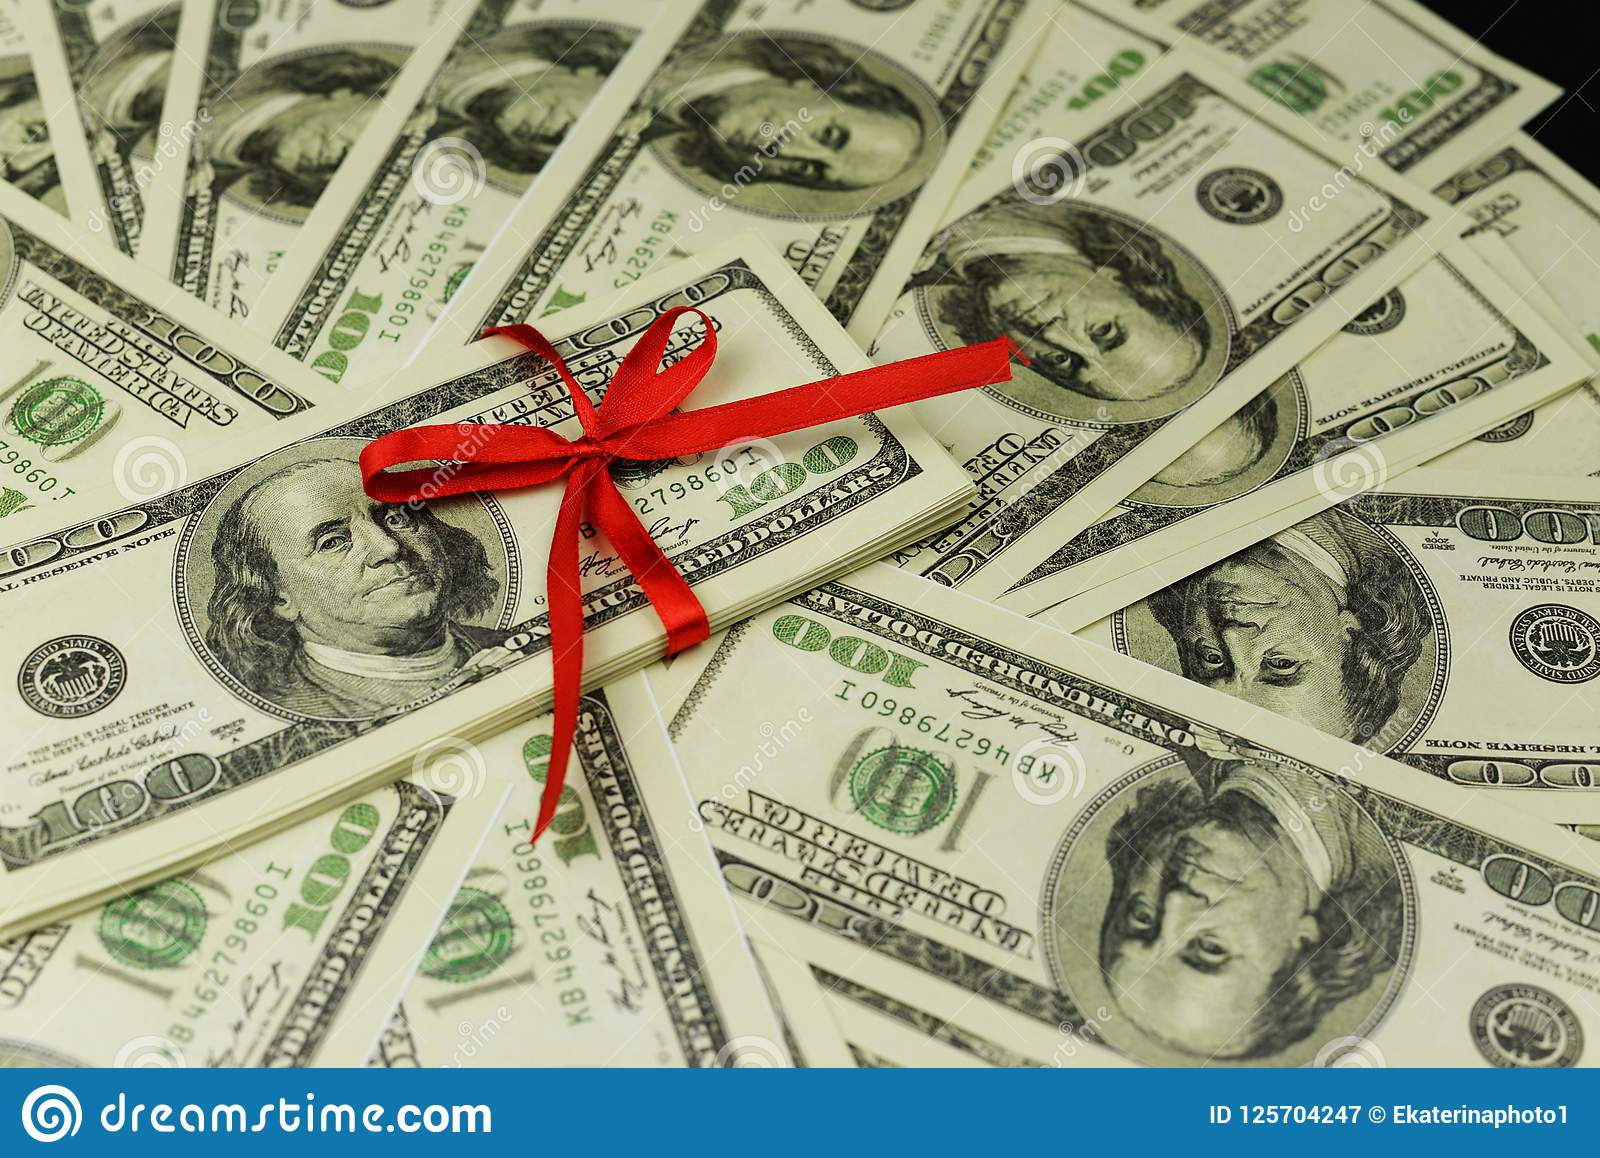 Background of a lot of banknotes of money cash